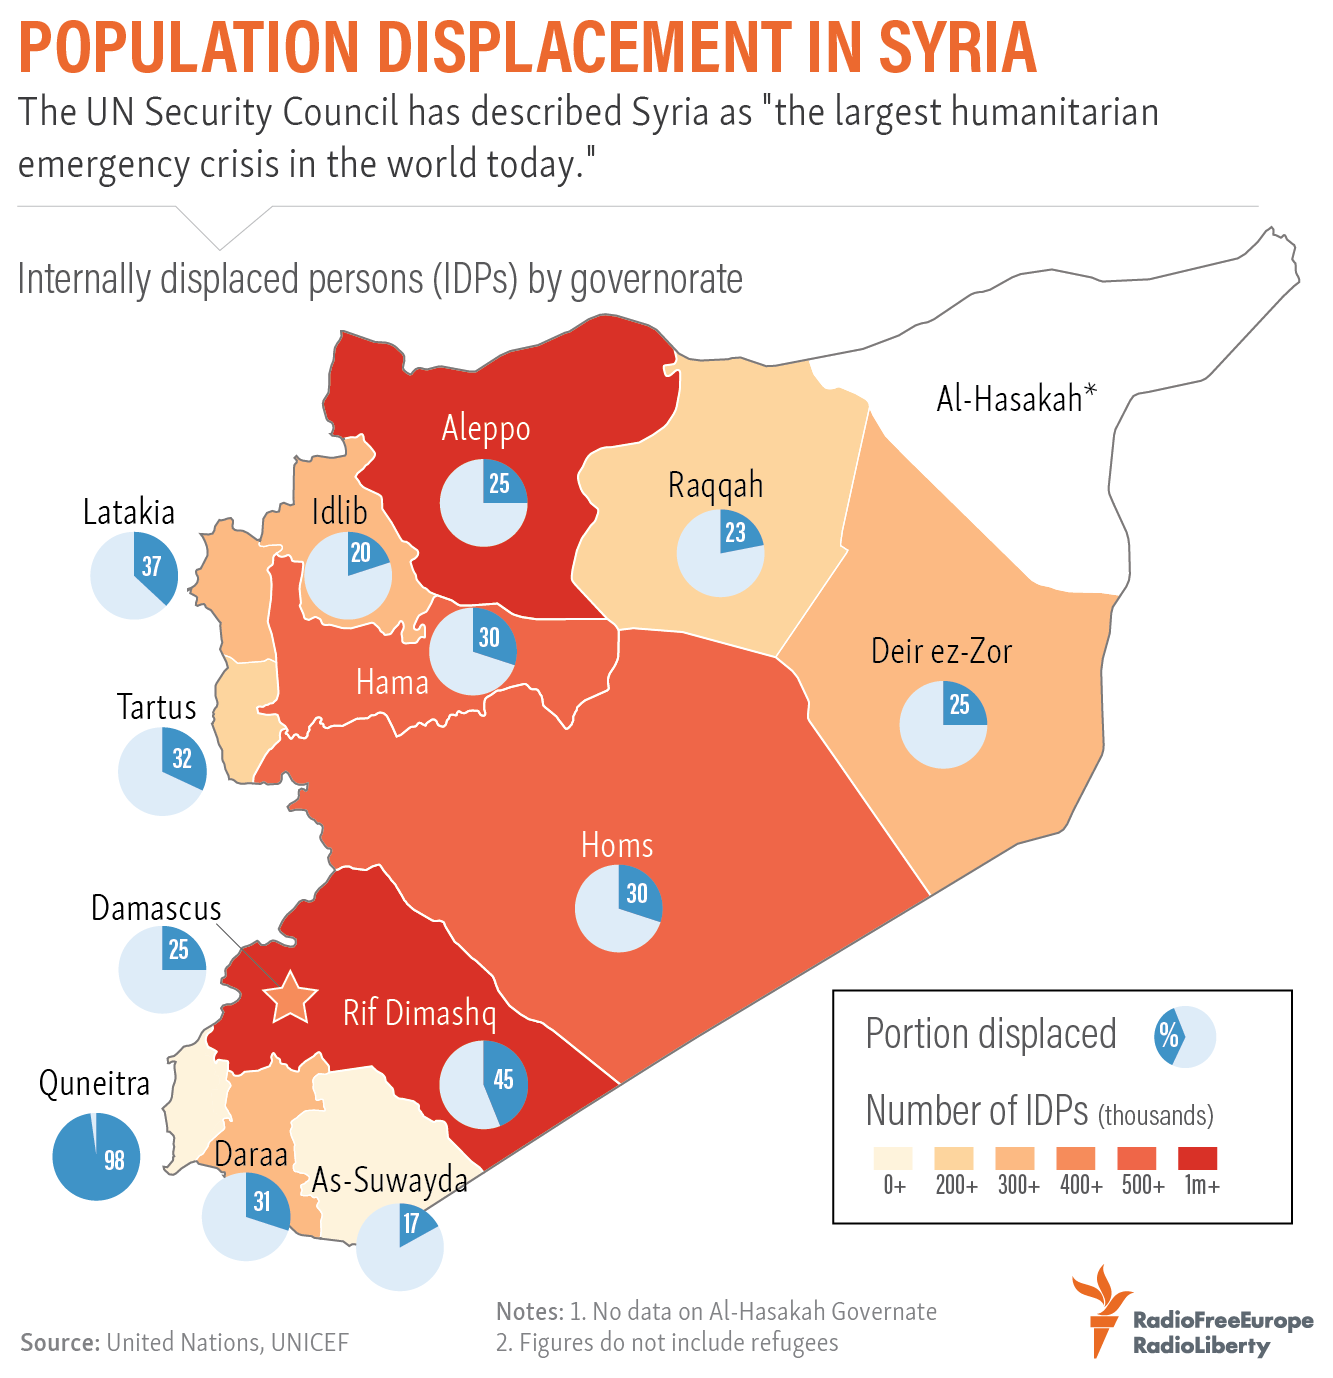 Population Displacement In Syria